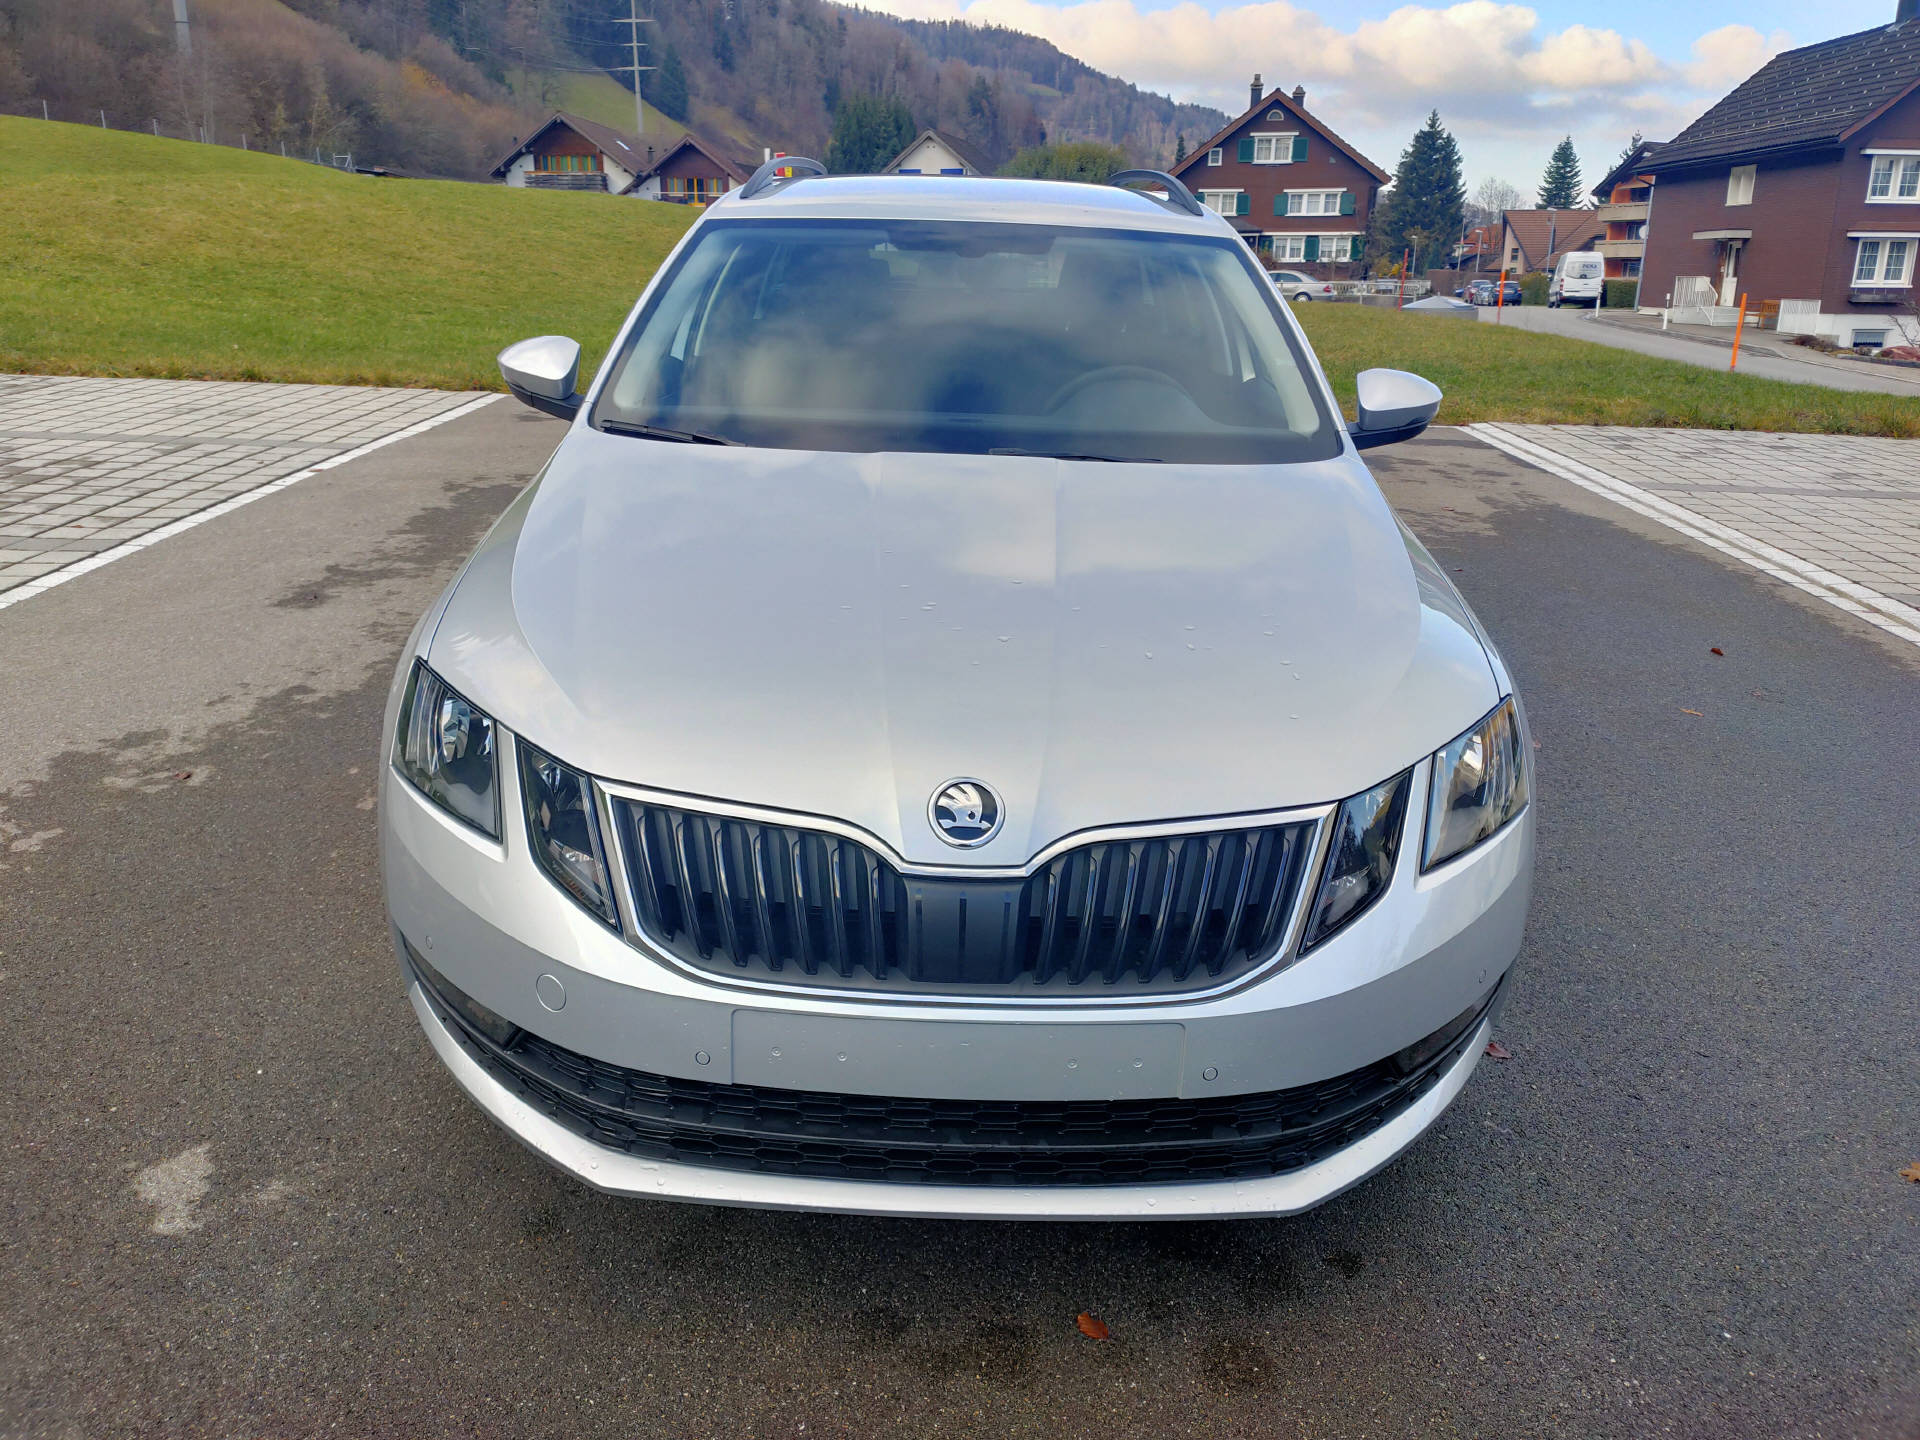 estate Skoda Octavia Combi 1.5 TSI Ambition